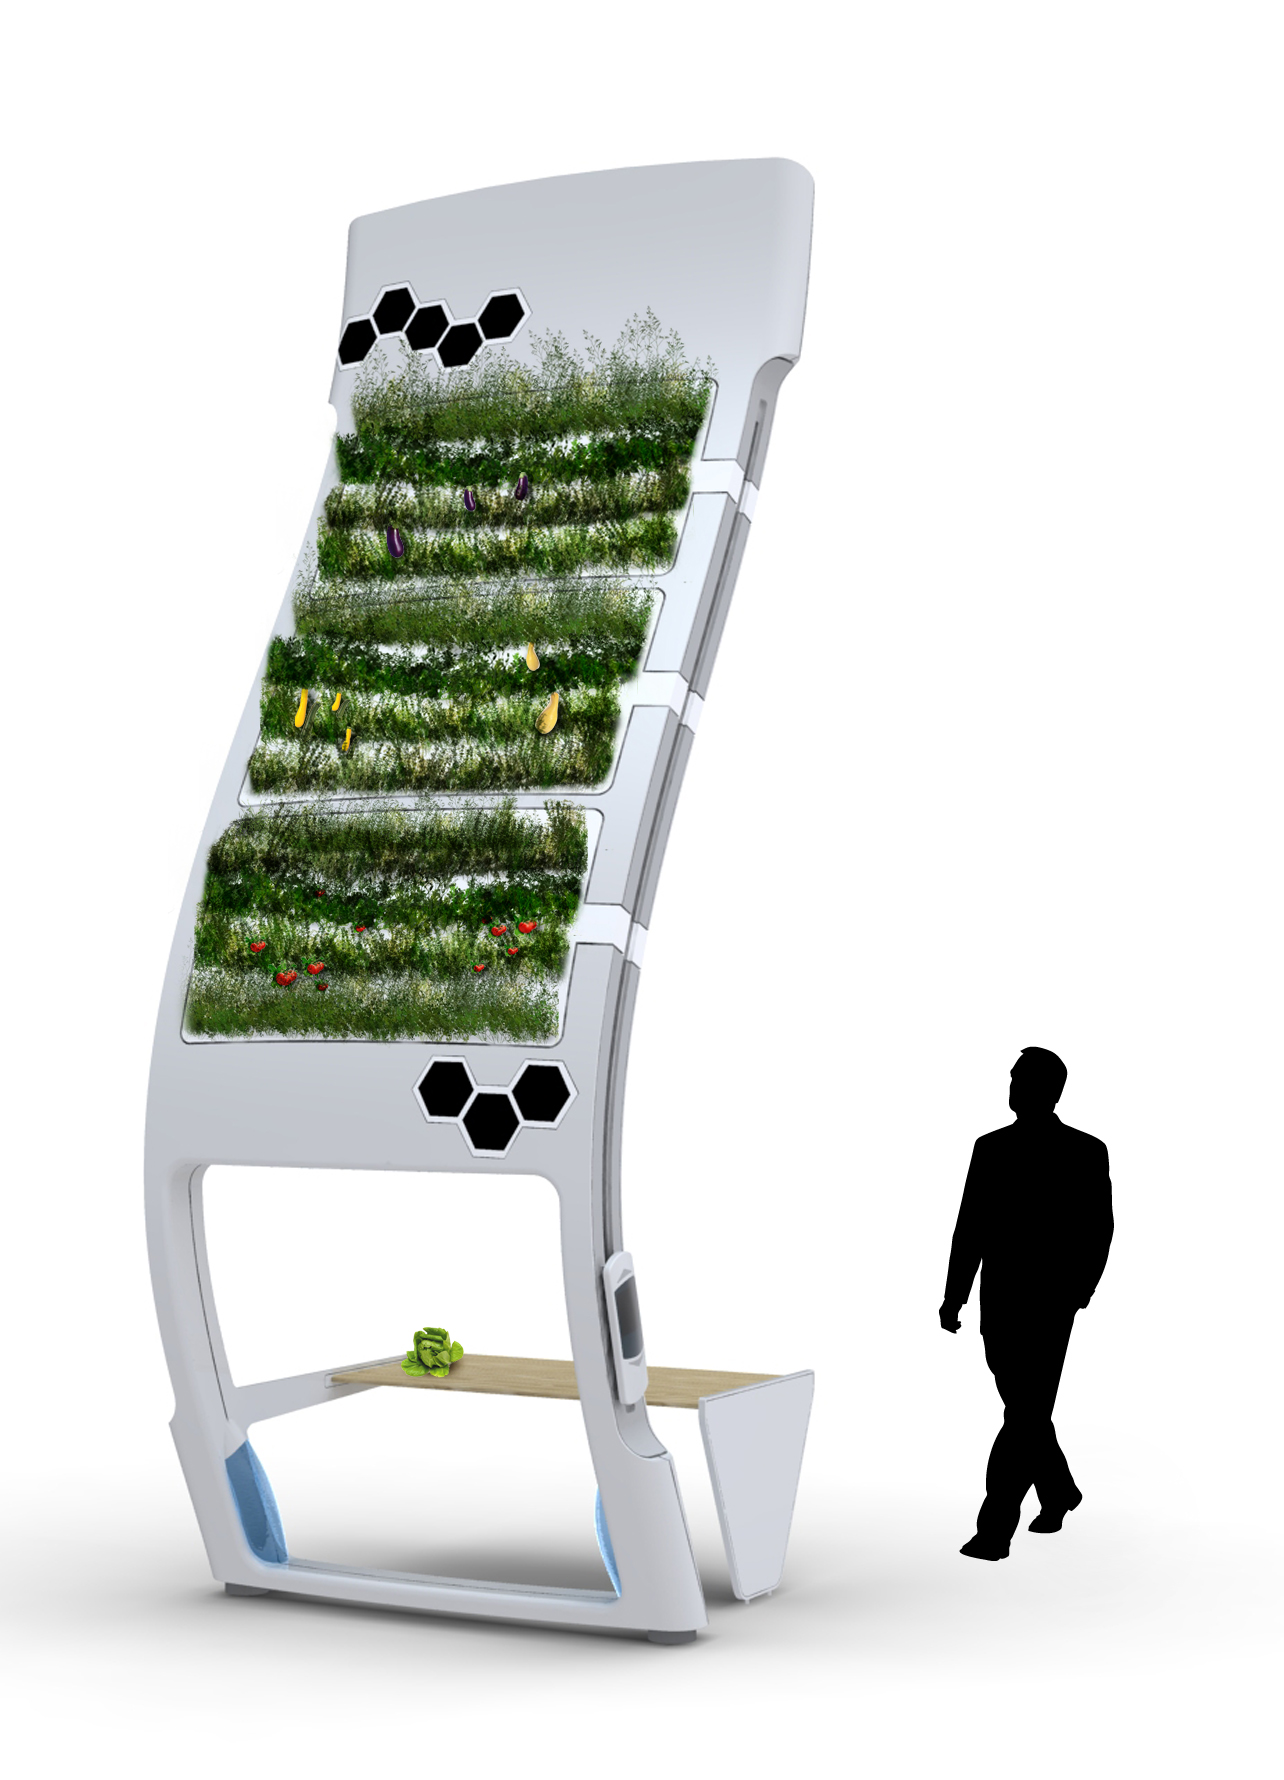 Aeroponic Garden System by Erik Campbell at Coroflotcom